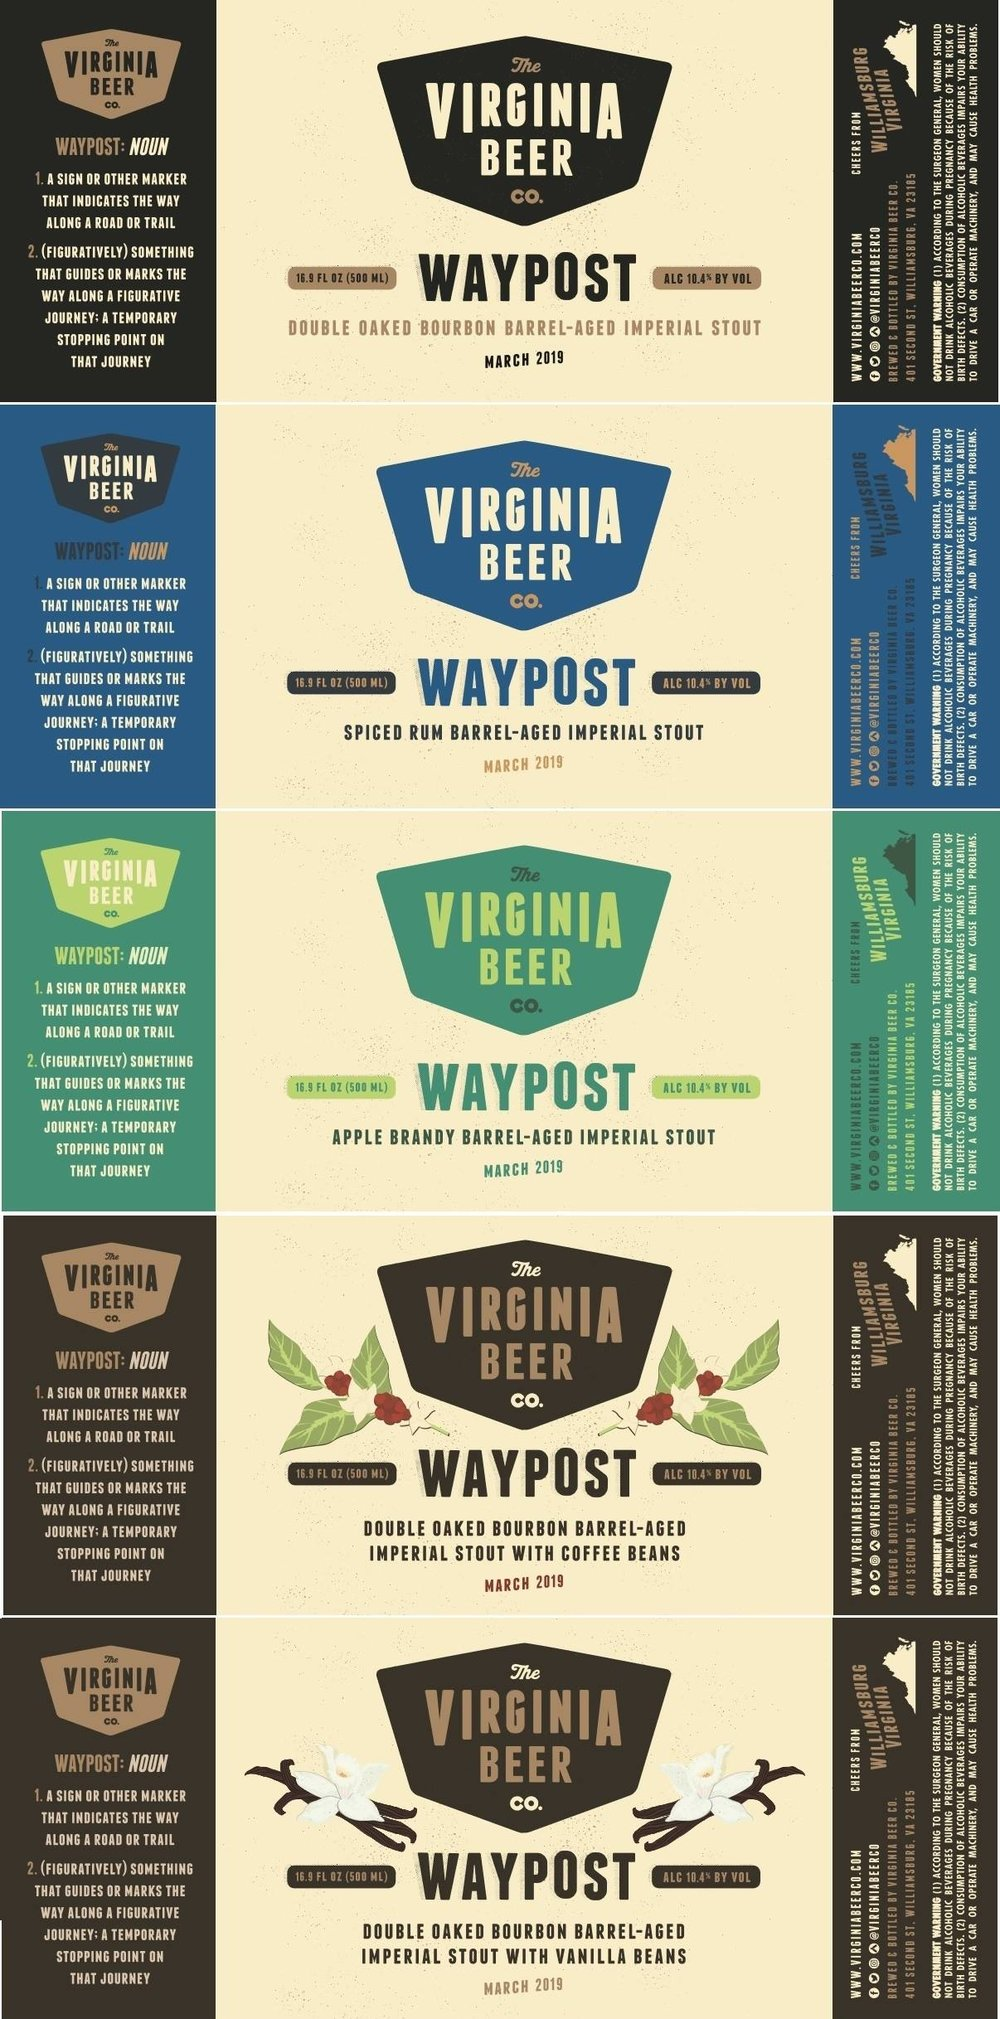 2019 Waypost Bottle Releases - 5 Variants. 2 Weekends. Live Music. Food Trucks.